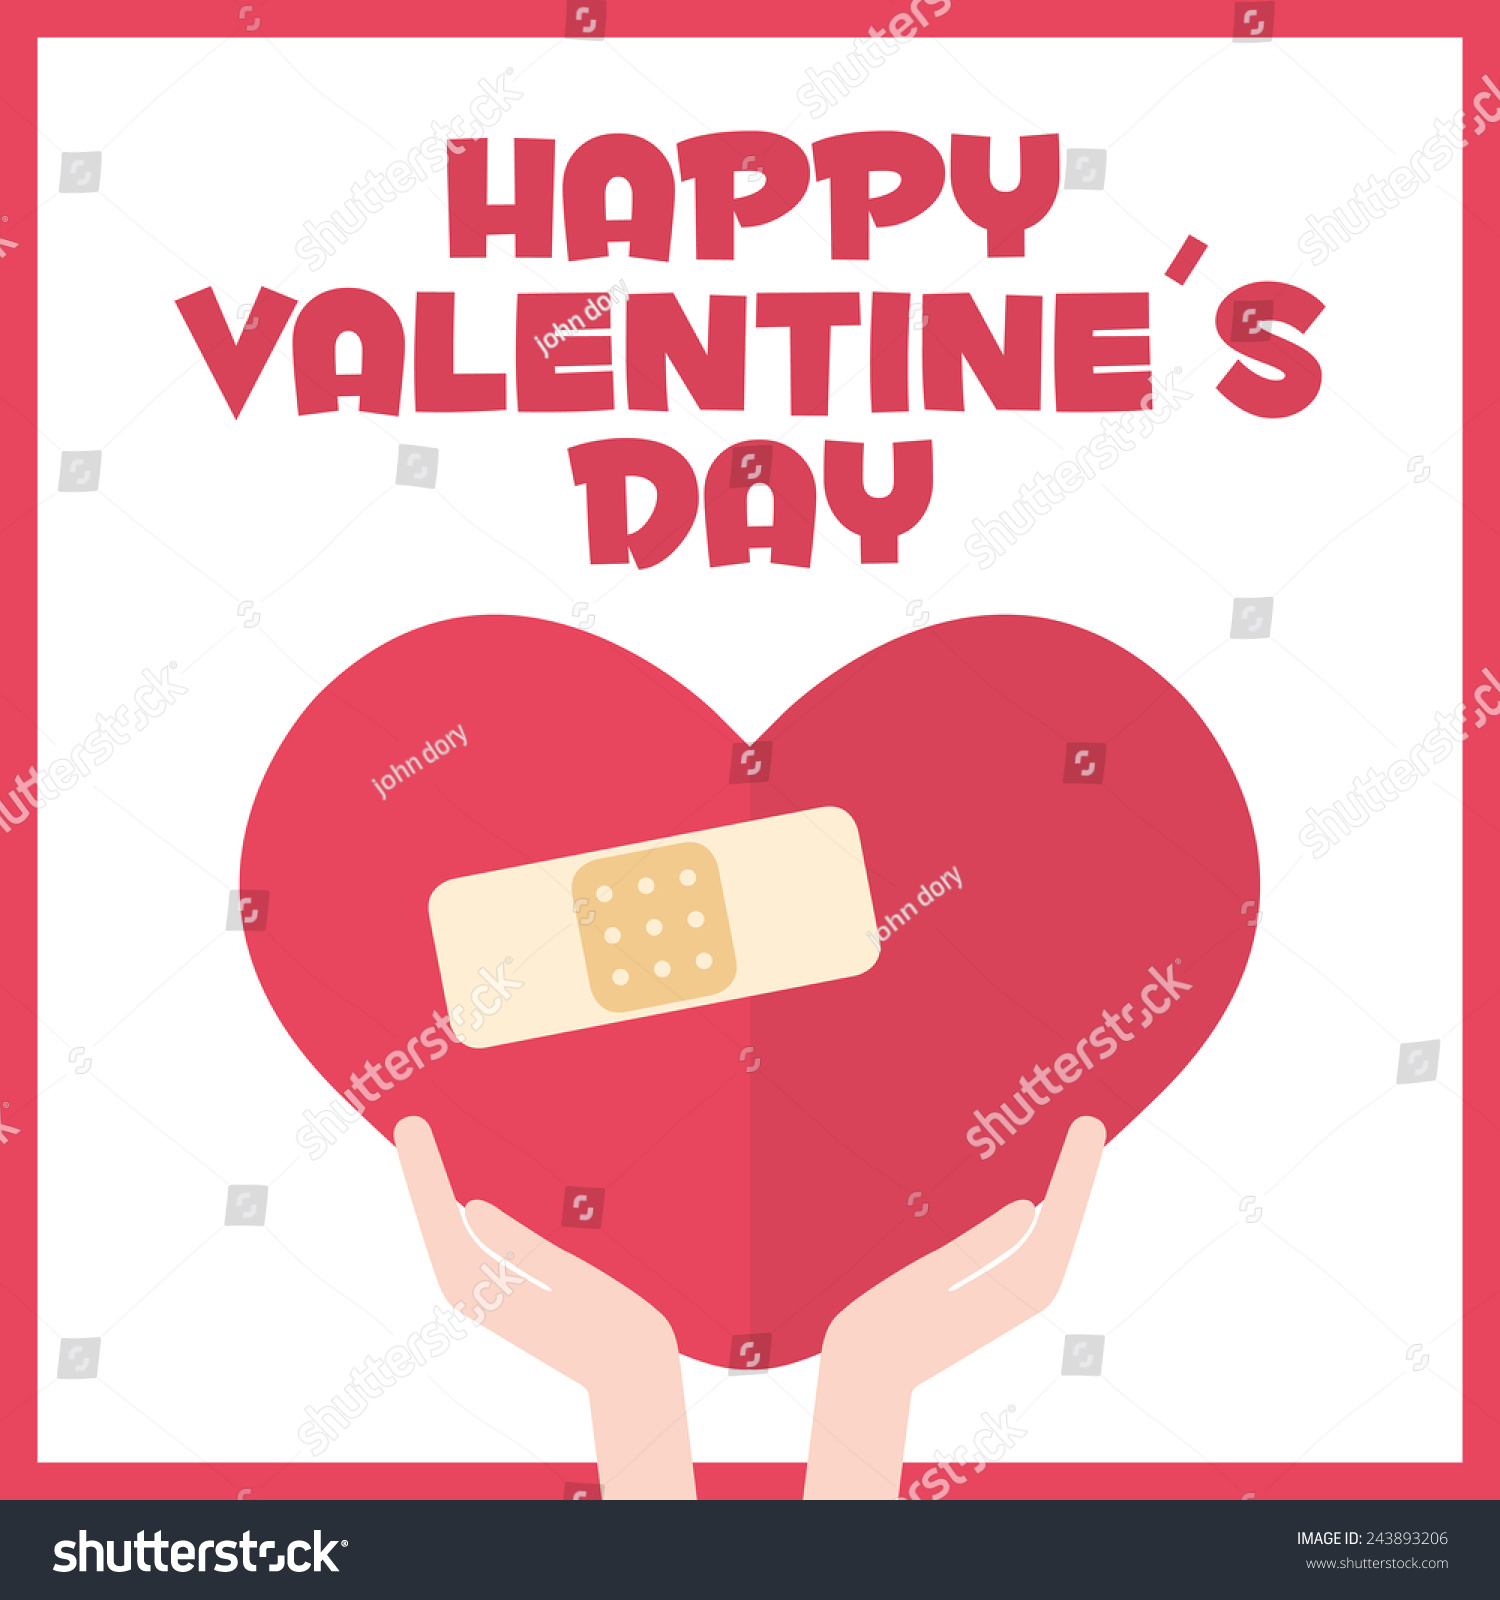 Happy Valentines Day Card. Heart With Band Aid